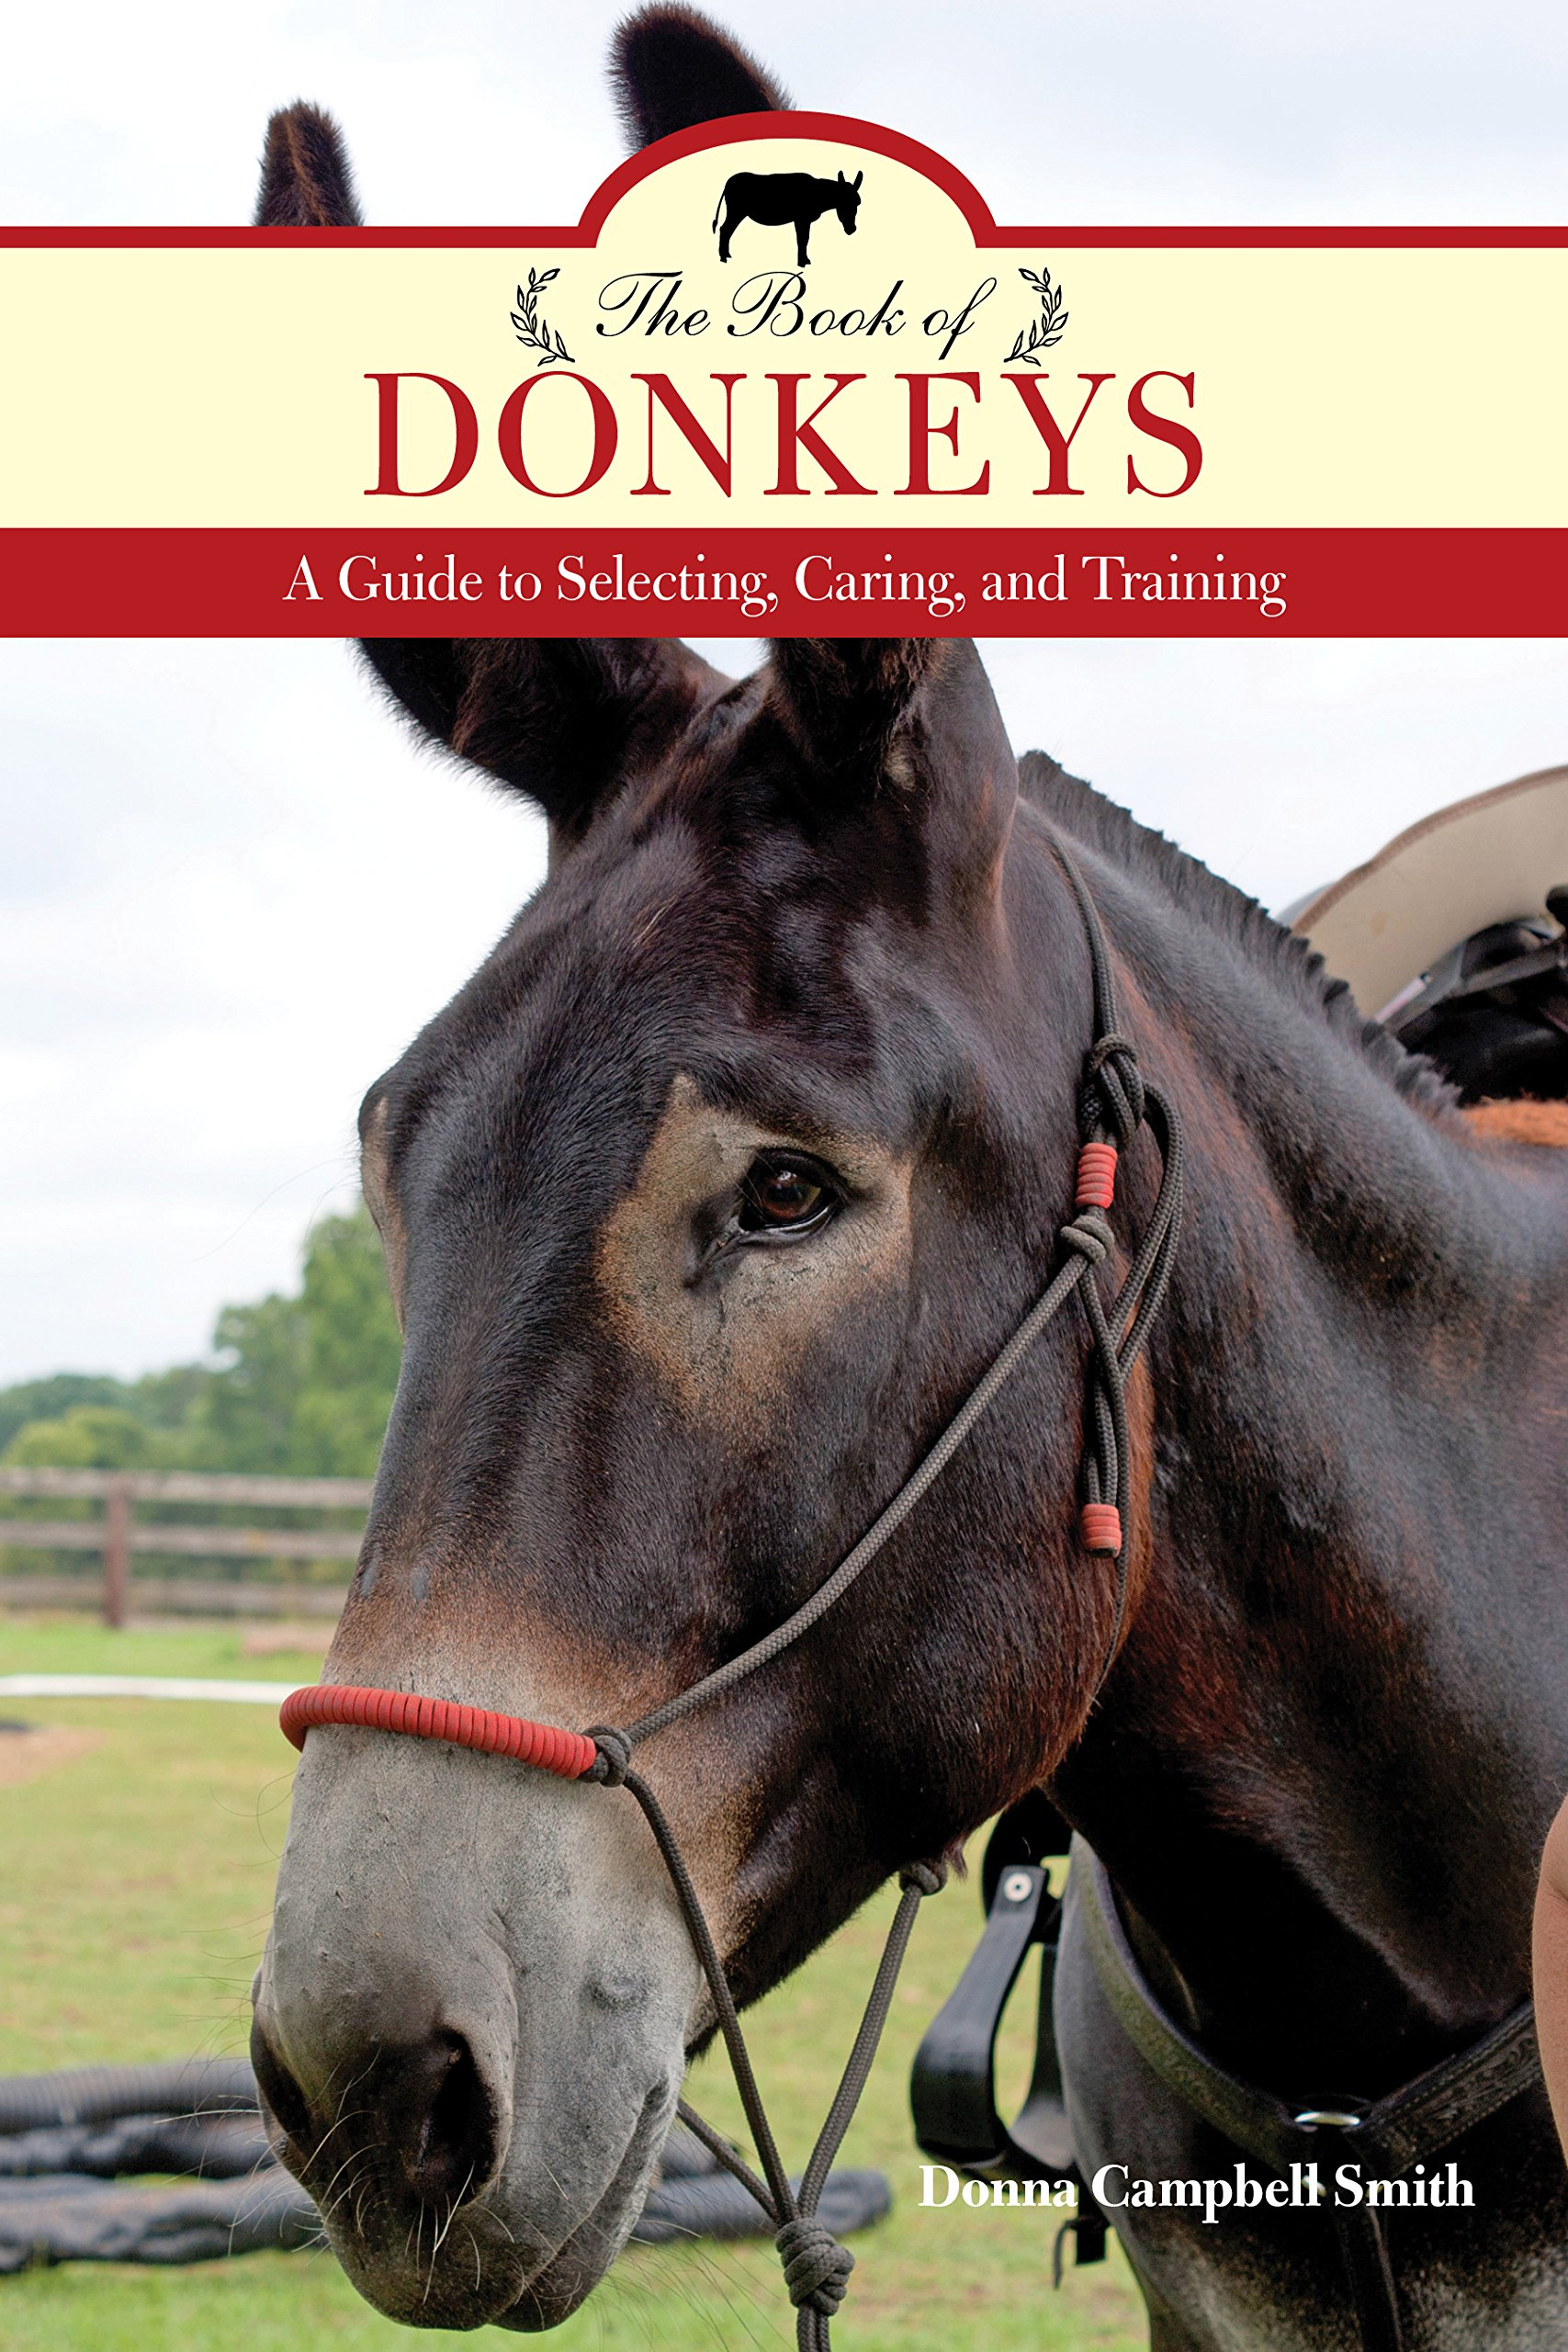 Book cover for The Book of Donkeys, published 2016. Source: Donna Campbell Smith, NC.